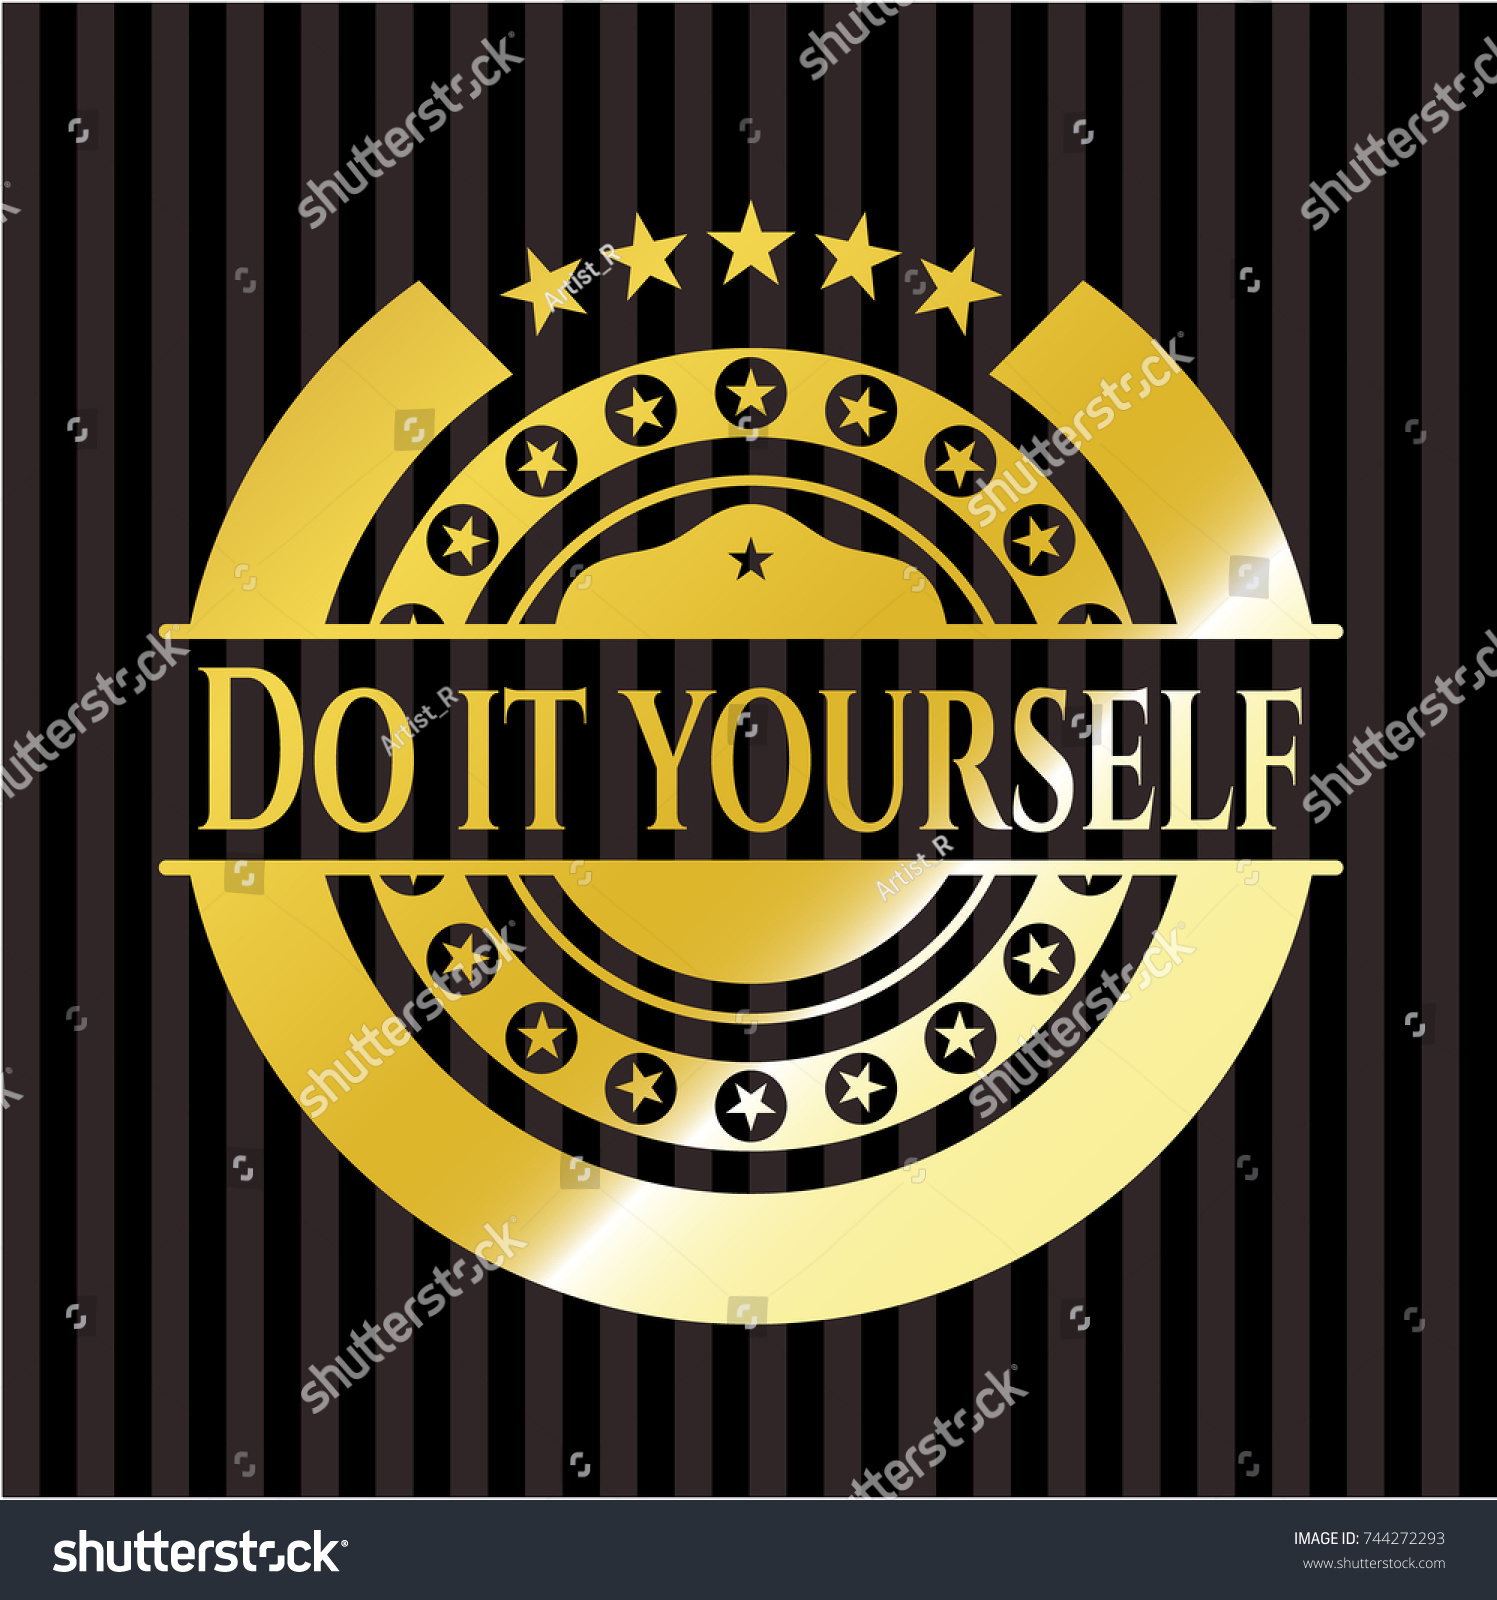 Do yourself gold badge emblem stock vector 744272293 shutterstock do it yourself gold badge or emblem solutioingenieria Image collections